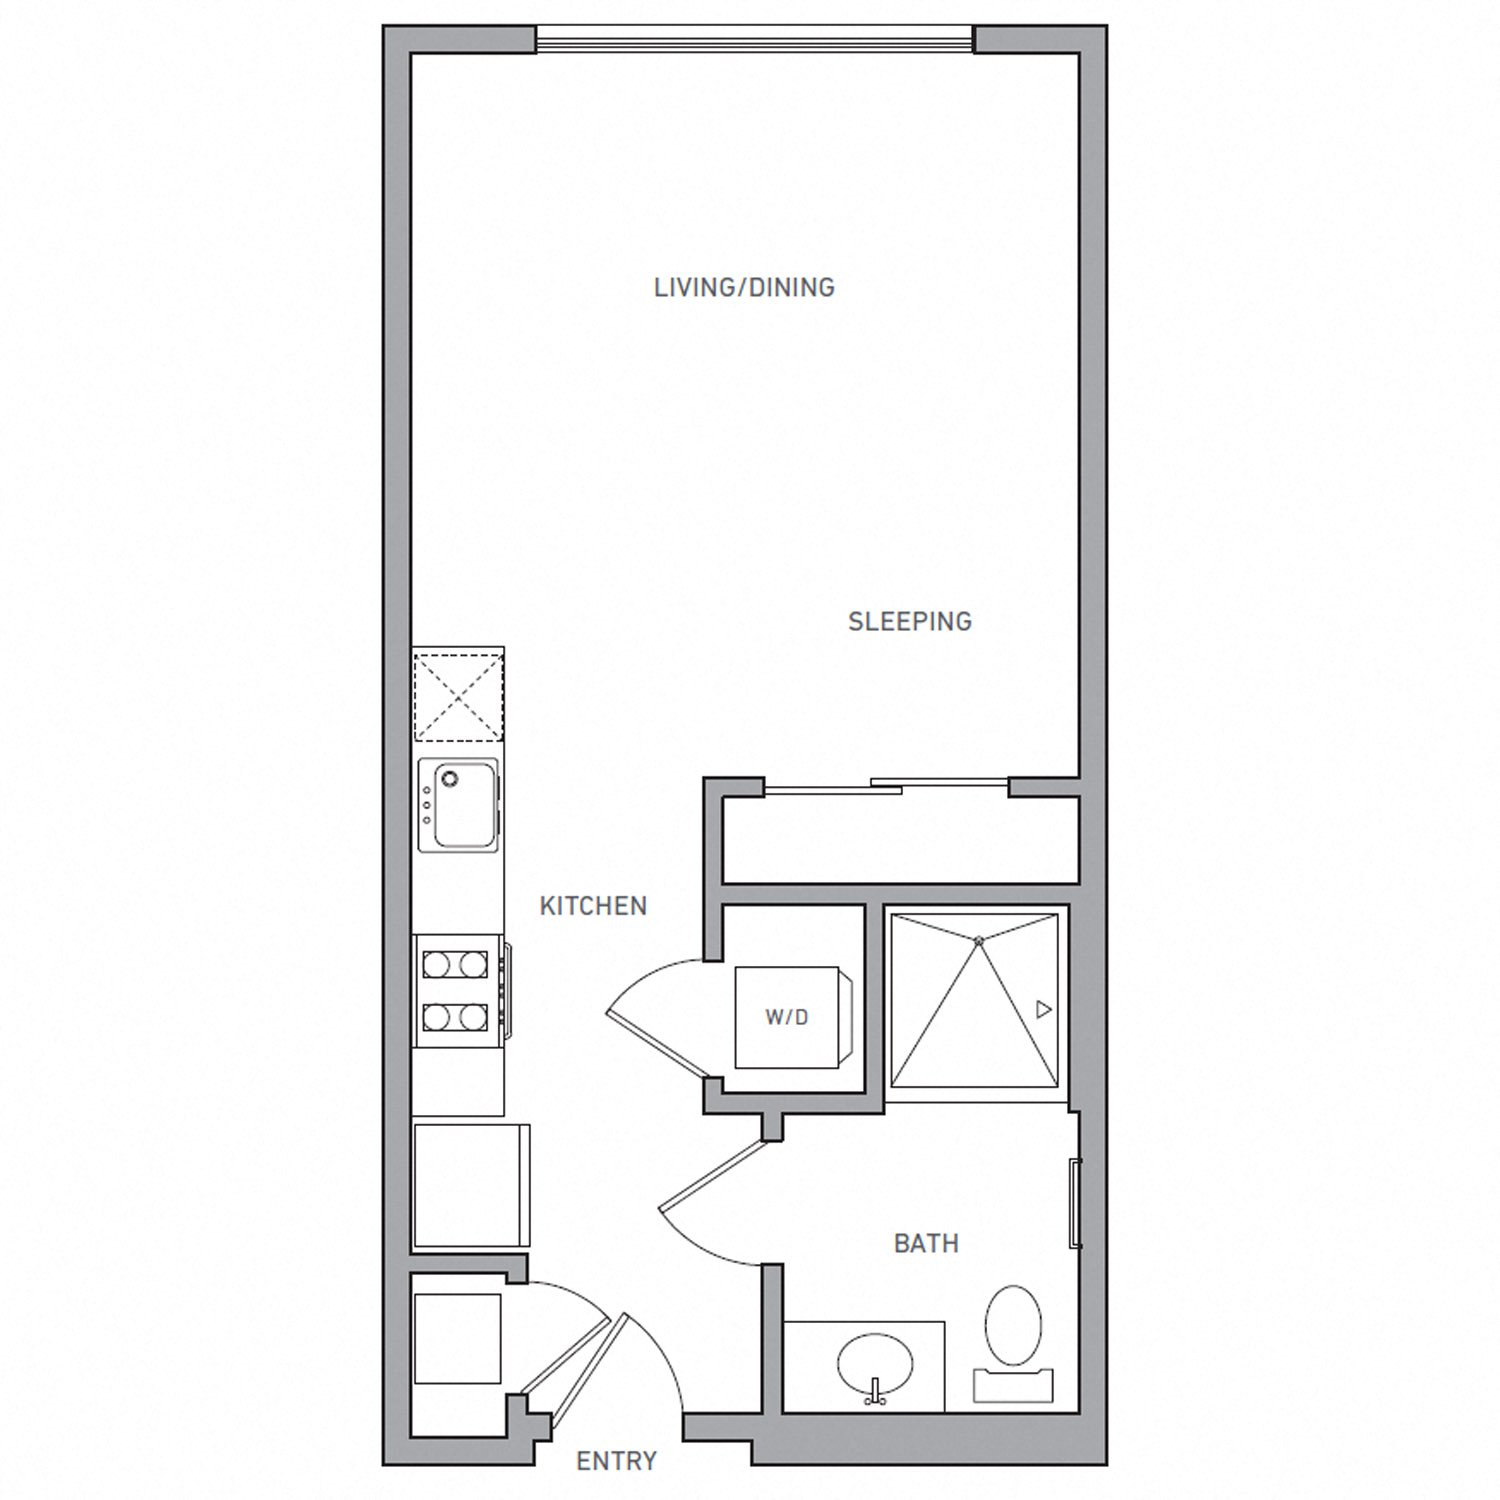 S Two floor plan diagram. A studio apartment with one bathroom, an open kitchen and living area, and a washer dryer.